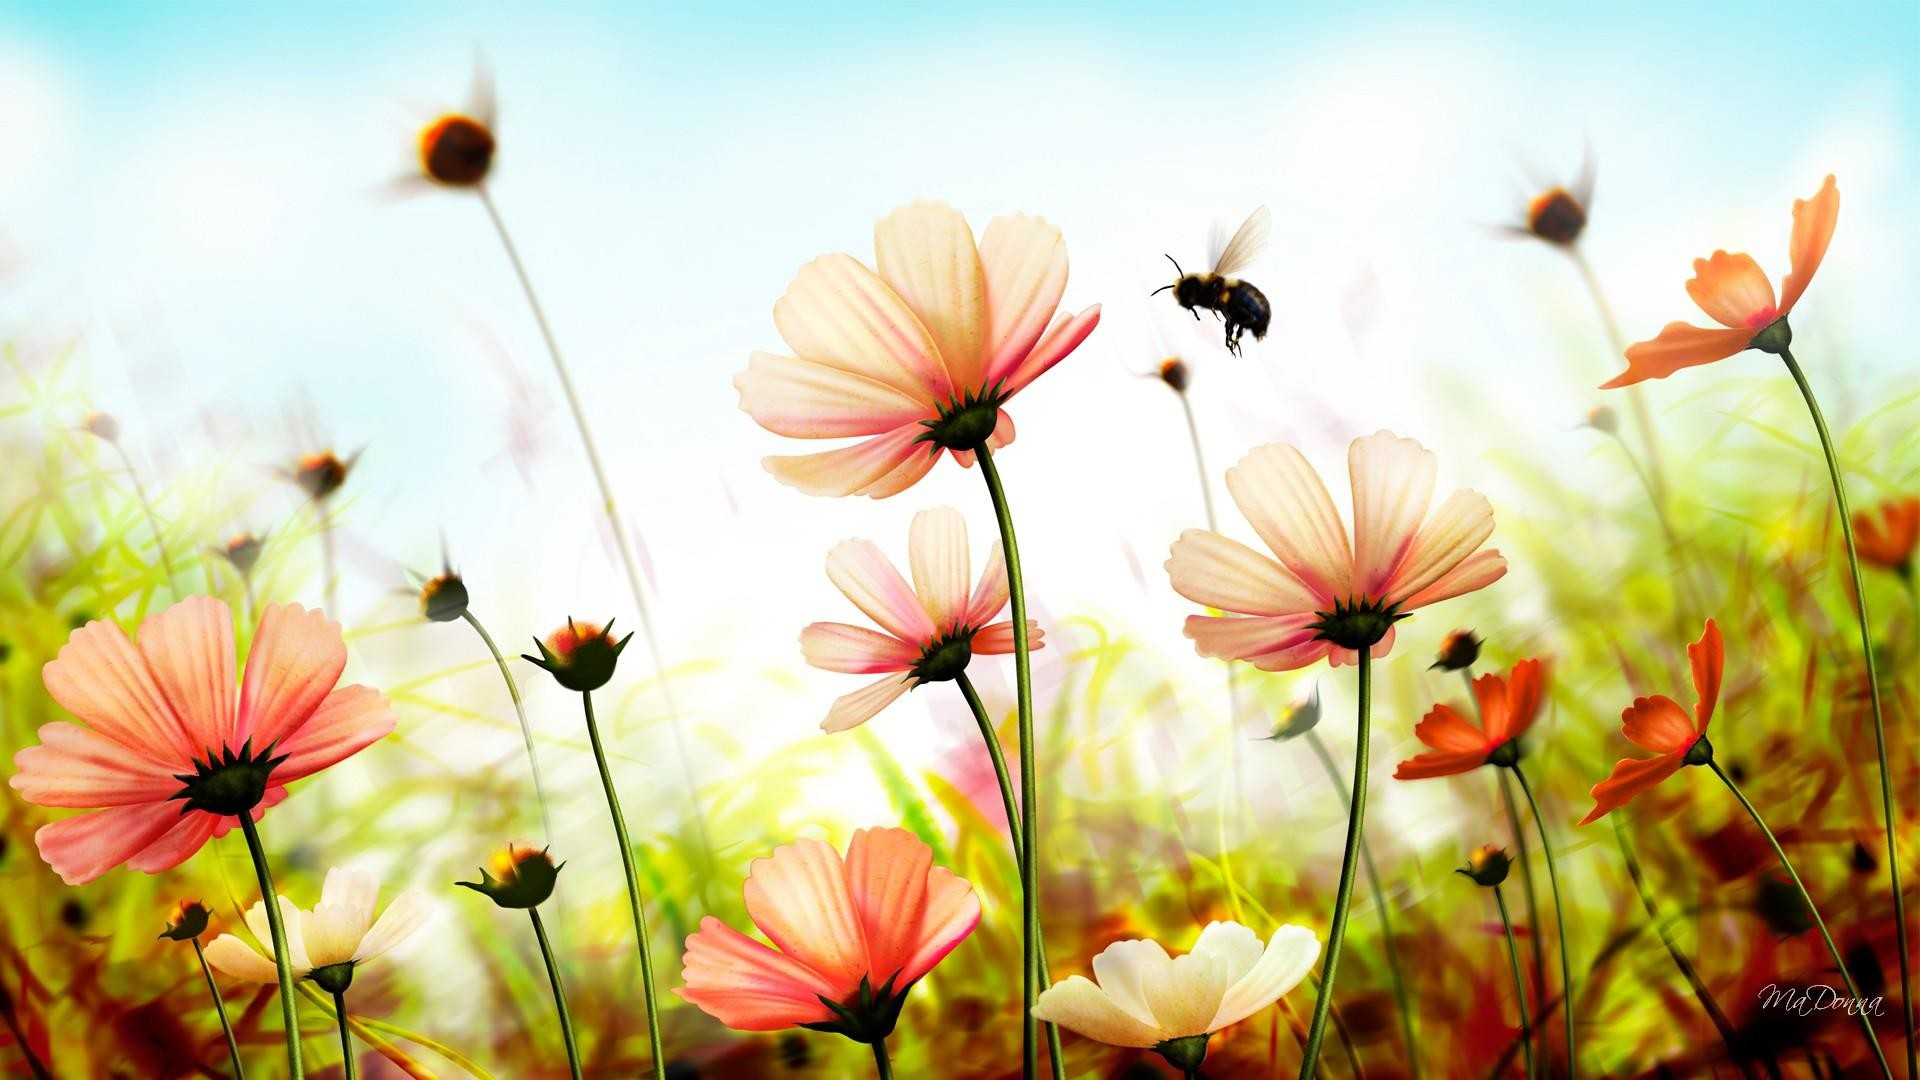 Res: 1920x1080, Summer Flowers Wallpaper High Quality